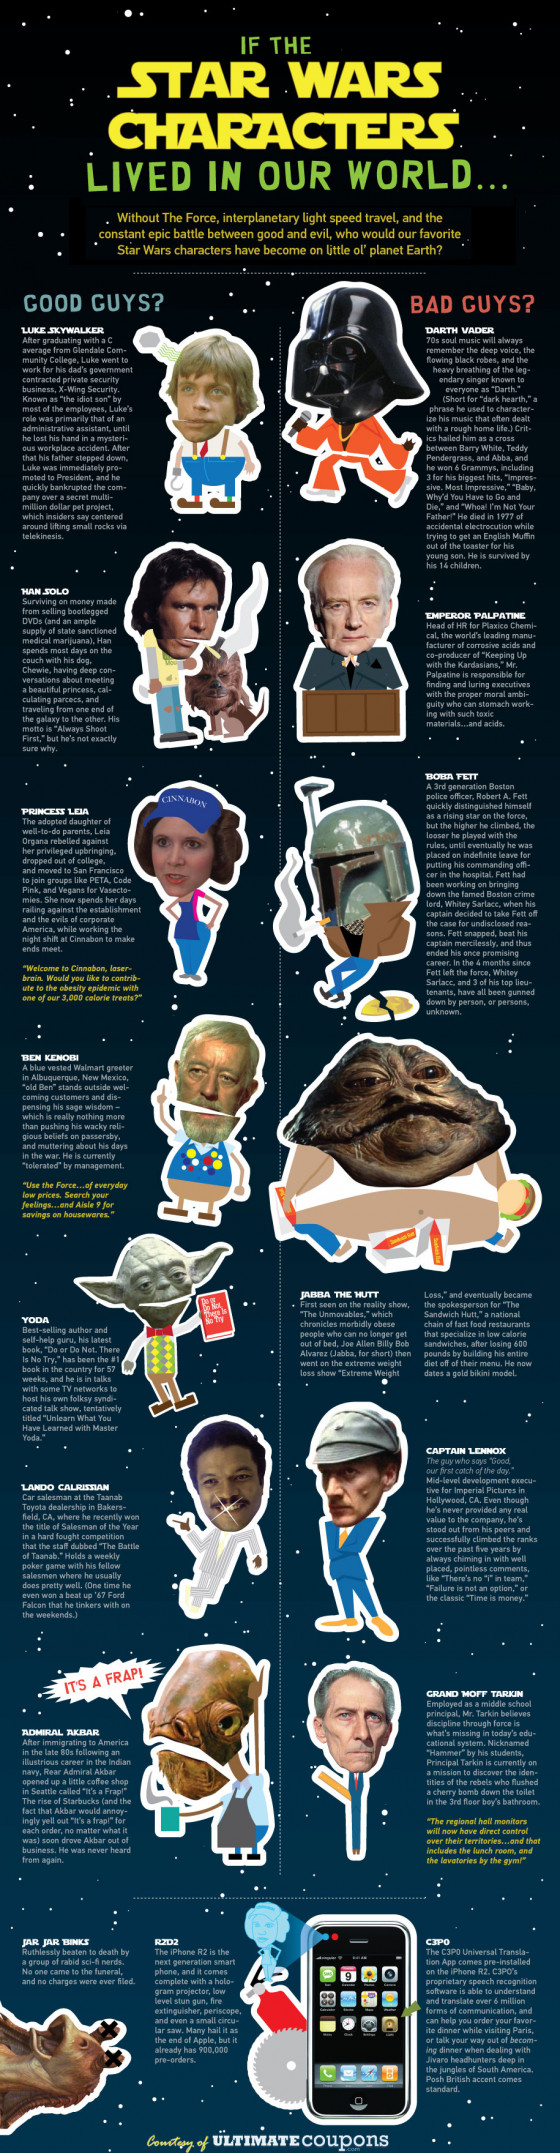 If STAR WARS Characters Lived in Our World